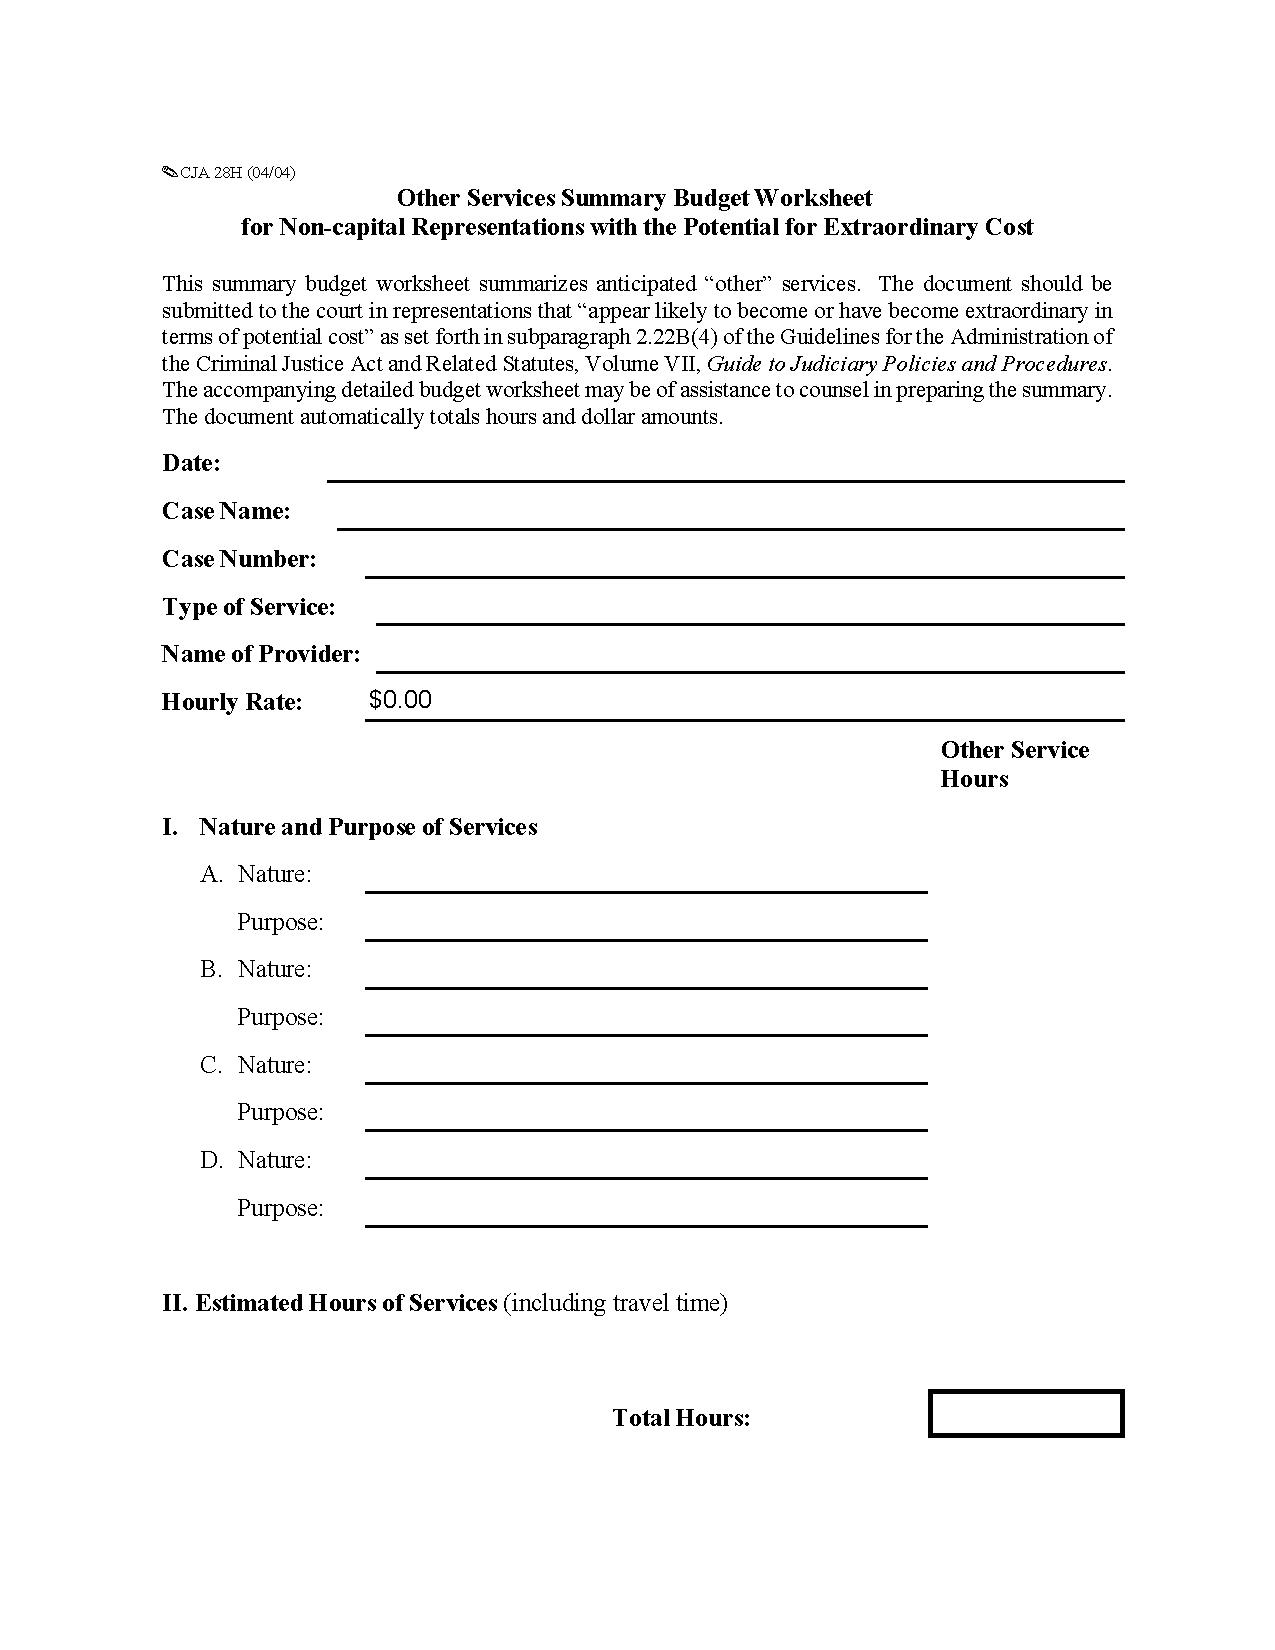 Form Cja H Other Services Summary Budget Worksheet For Non Capital Representations With The